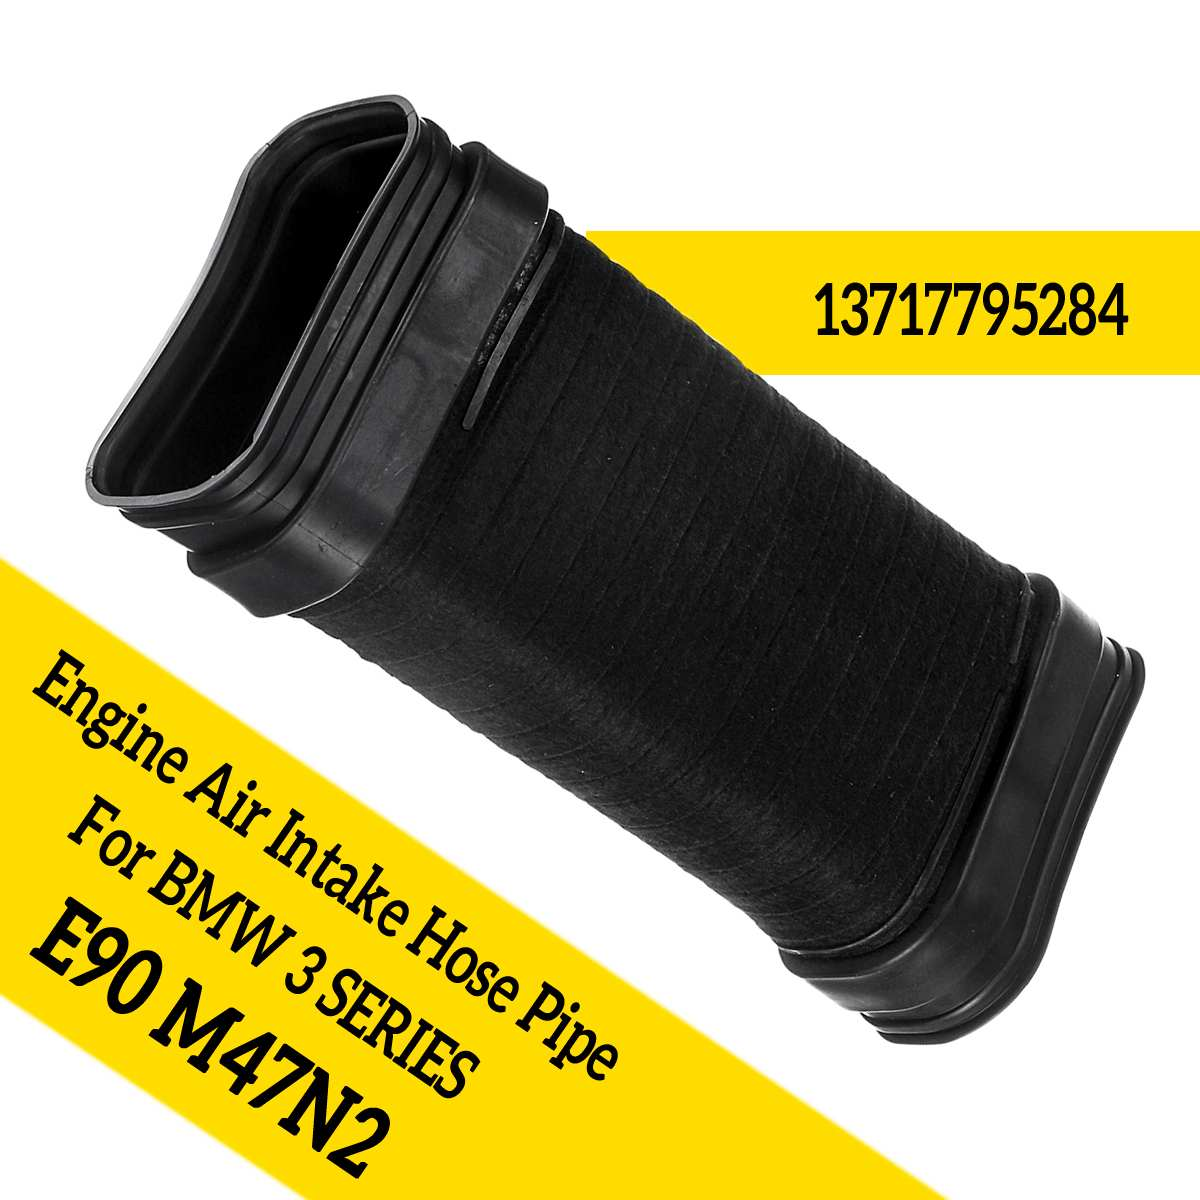 Autoleader Polypropylene Engine Air Intake Hose Pipe Fit For 3 Series E90 M47N2 13717795284 Parts